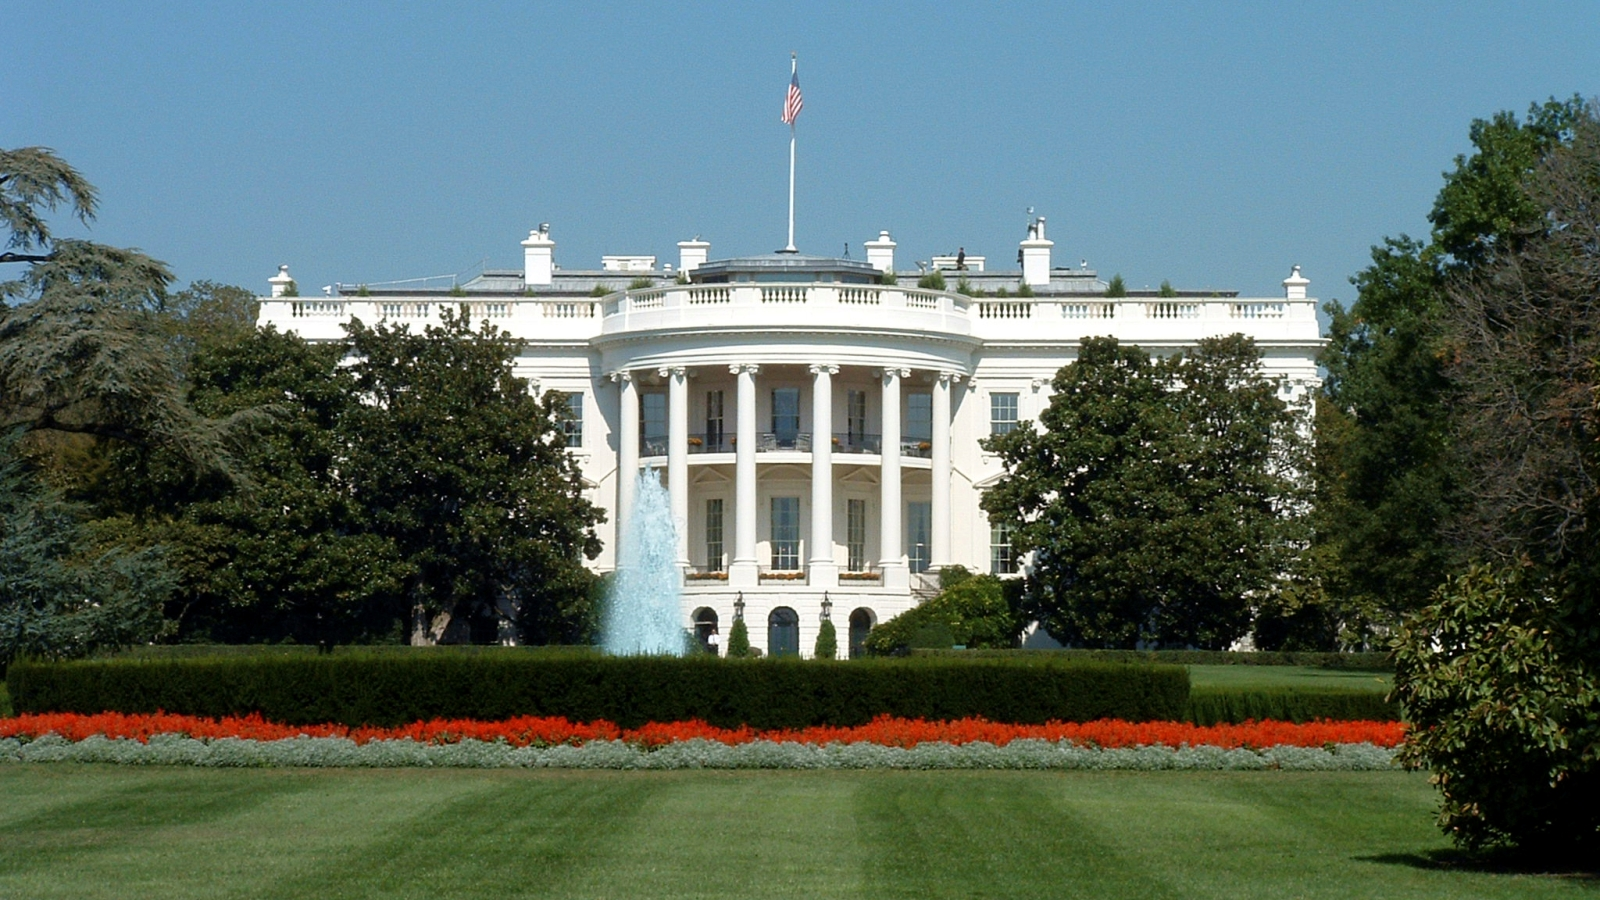 Things to do in Washington D.C. - The White House